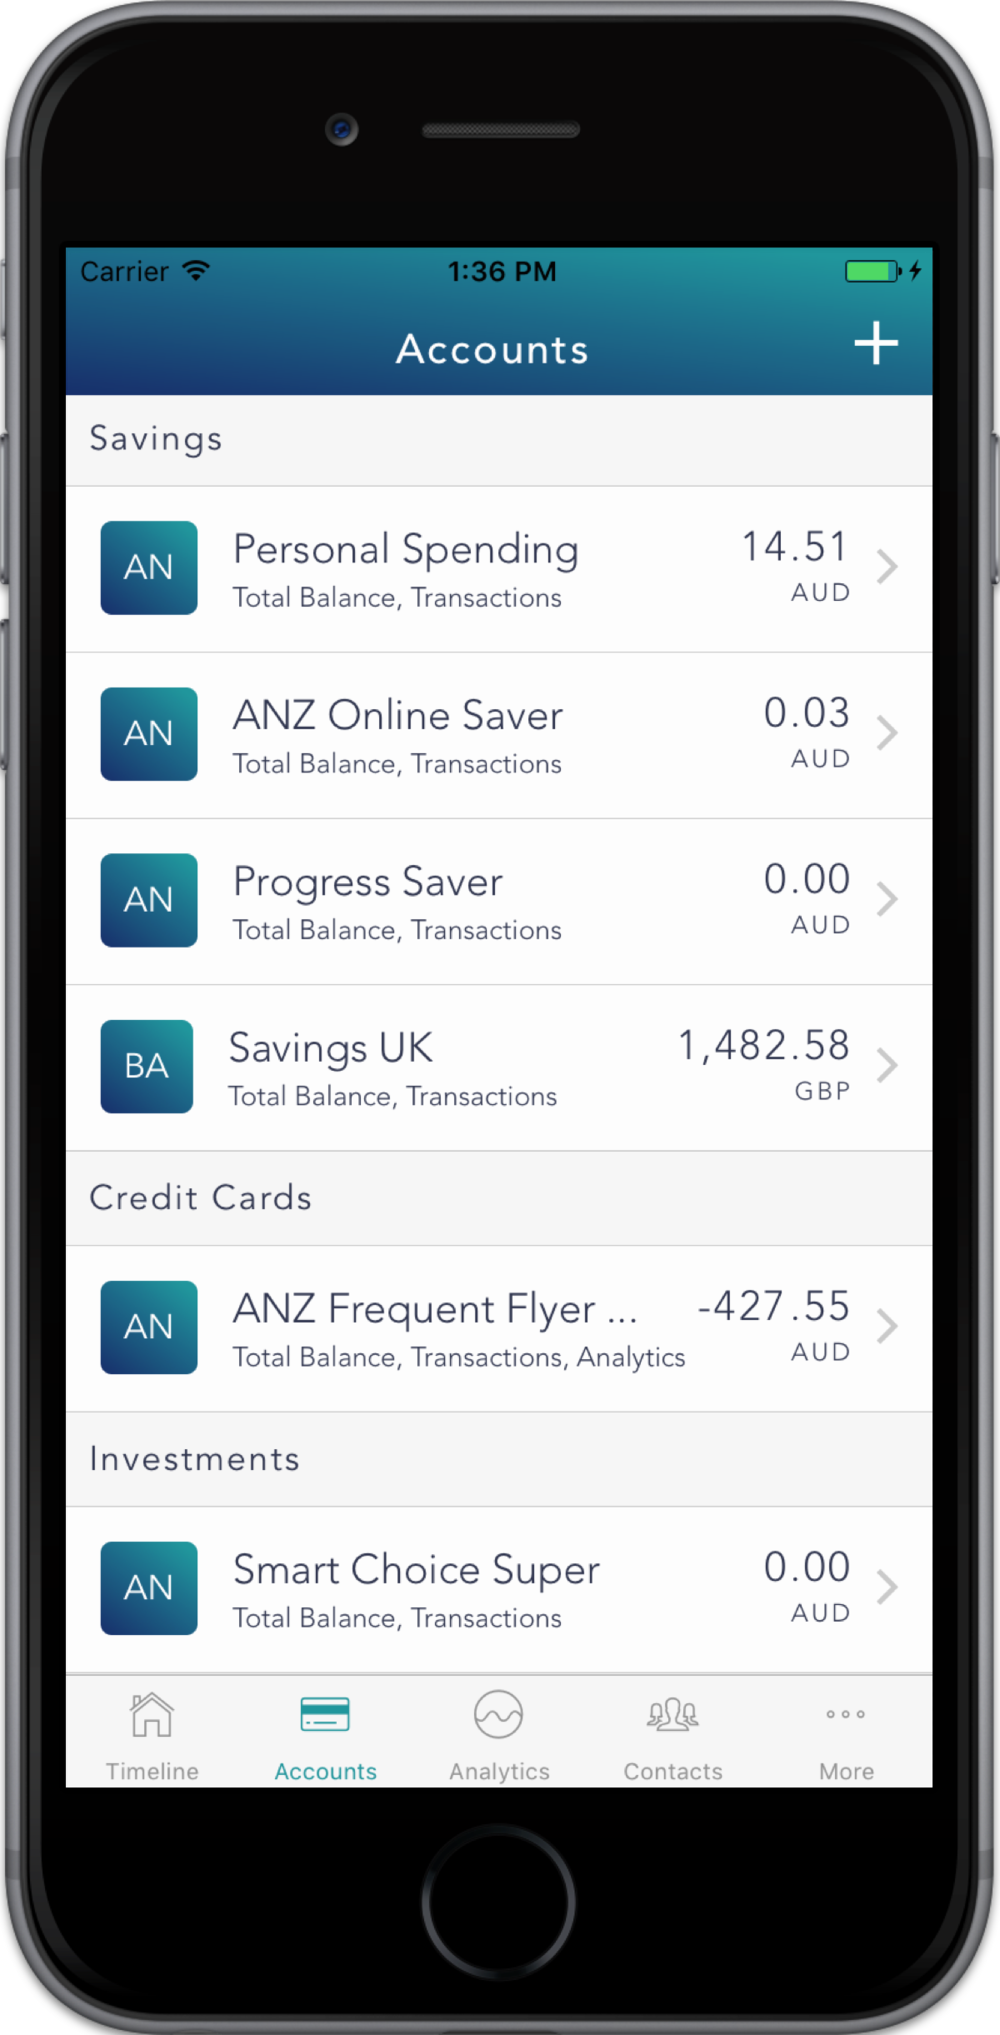 Connect - Add all your bank accounts and credit cards to get an aggregated view of all your accounts in one place. We are making this as easy as possible with Open Banking coming into effect this year.